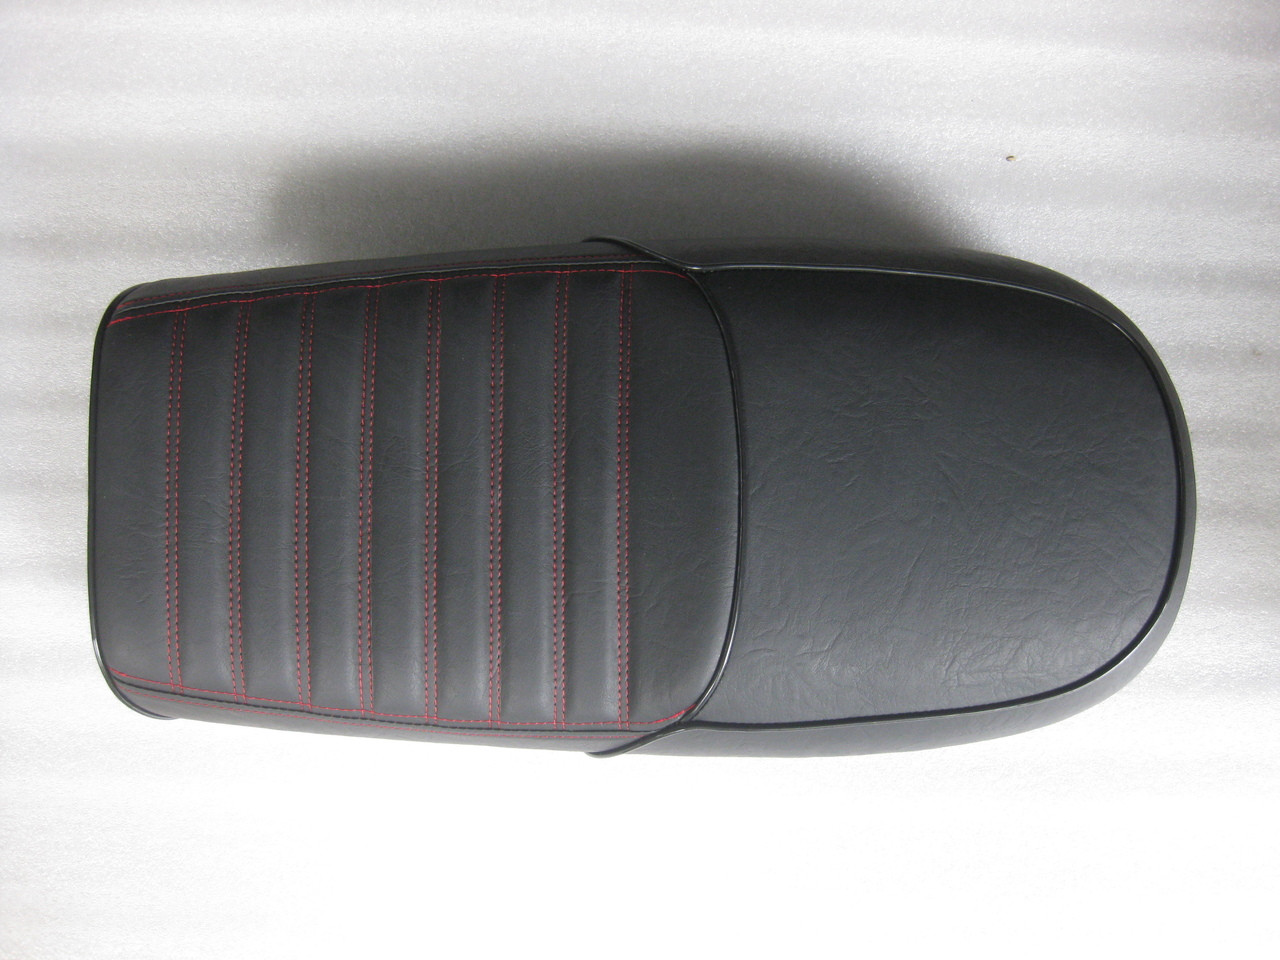 1981 Honda GL500 Cafe Racer Seat with Modified Seat Pan #4247